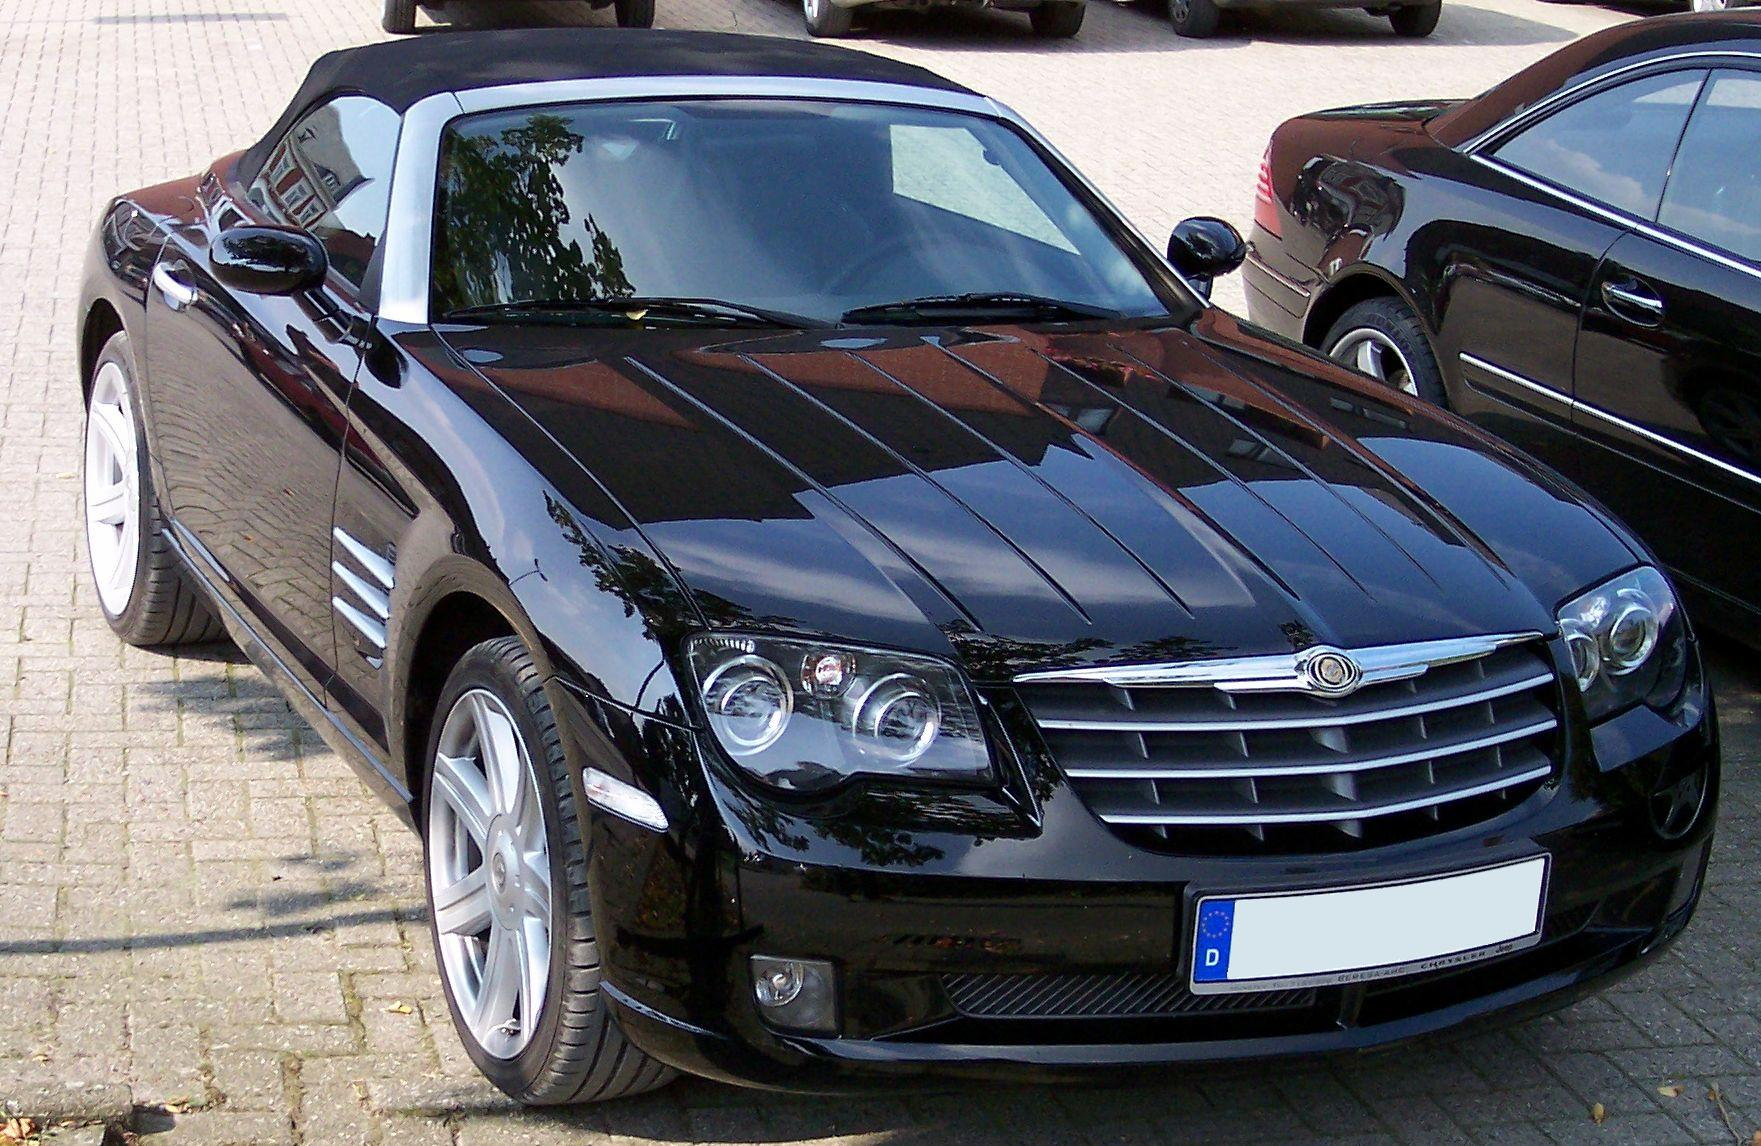 File:Chrysler Crossfire Cabrio black vr.jpg